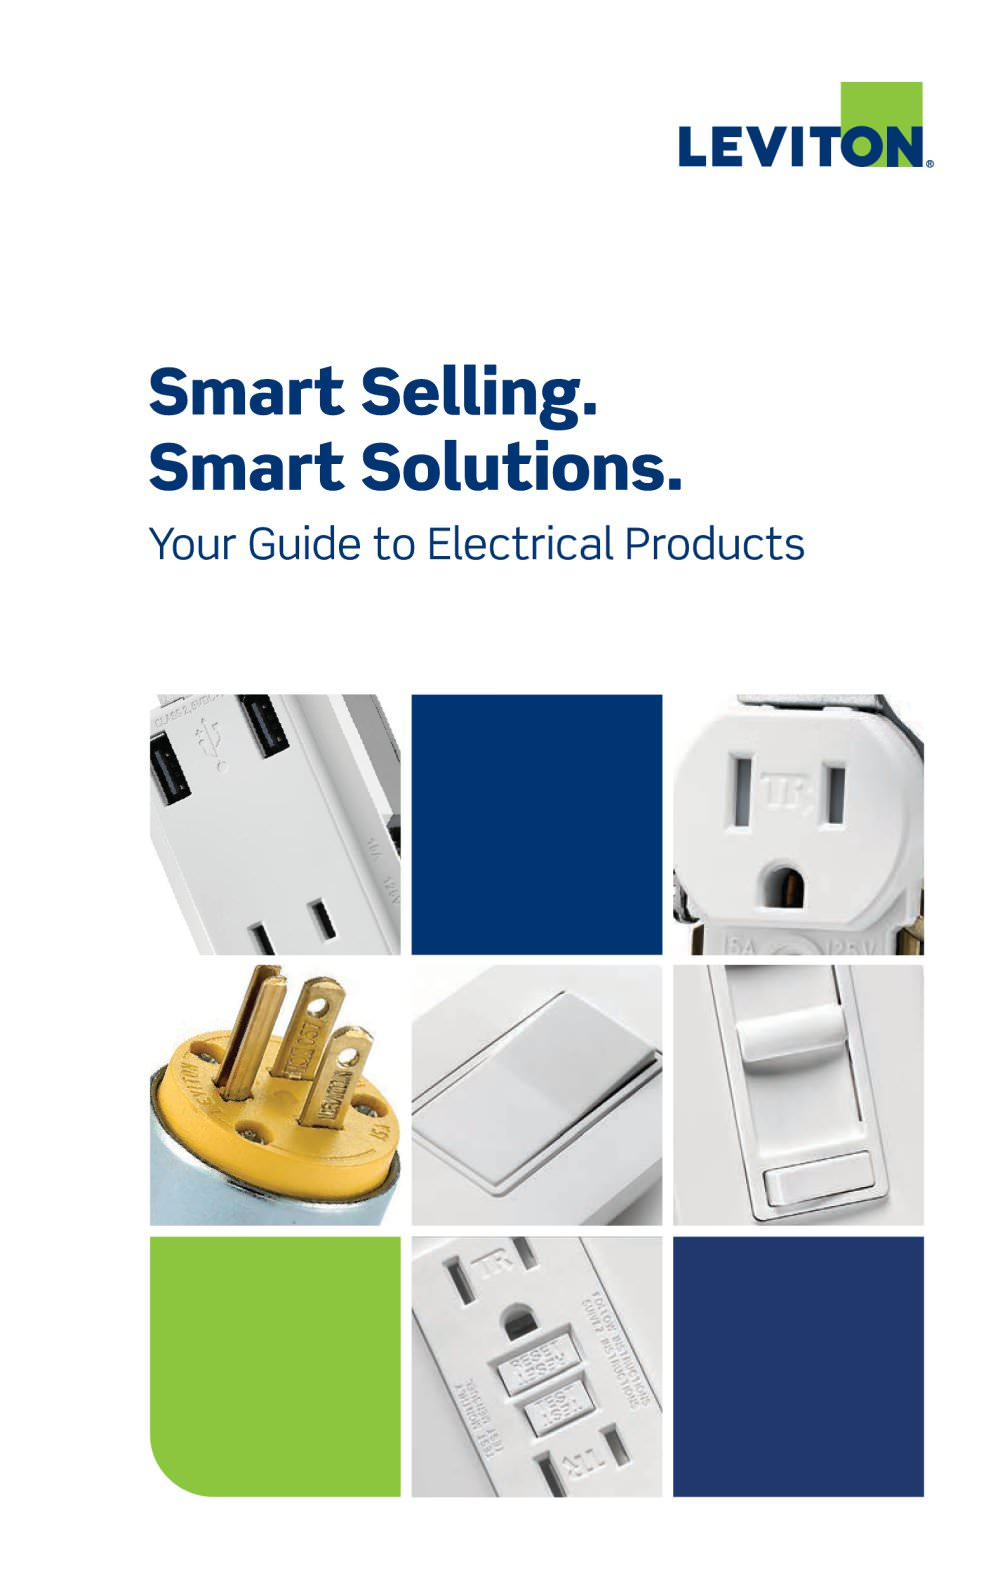 Smart Selling Solutions Leviton Lighting Pdf Catalogues Residential Wiring Handbook 1 226 Pages